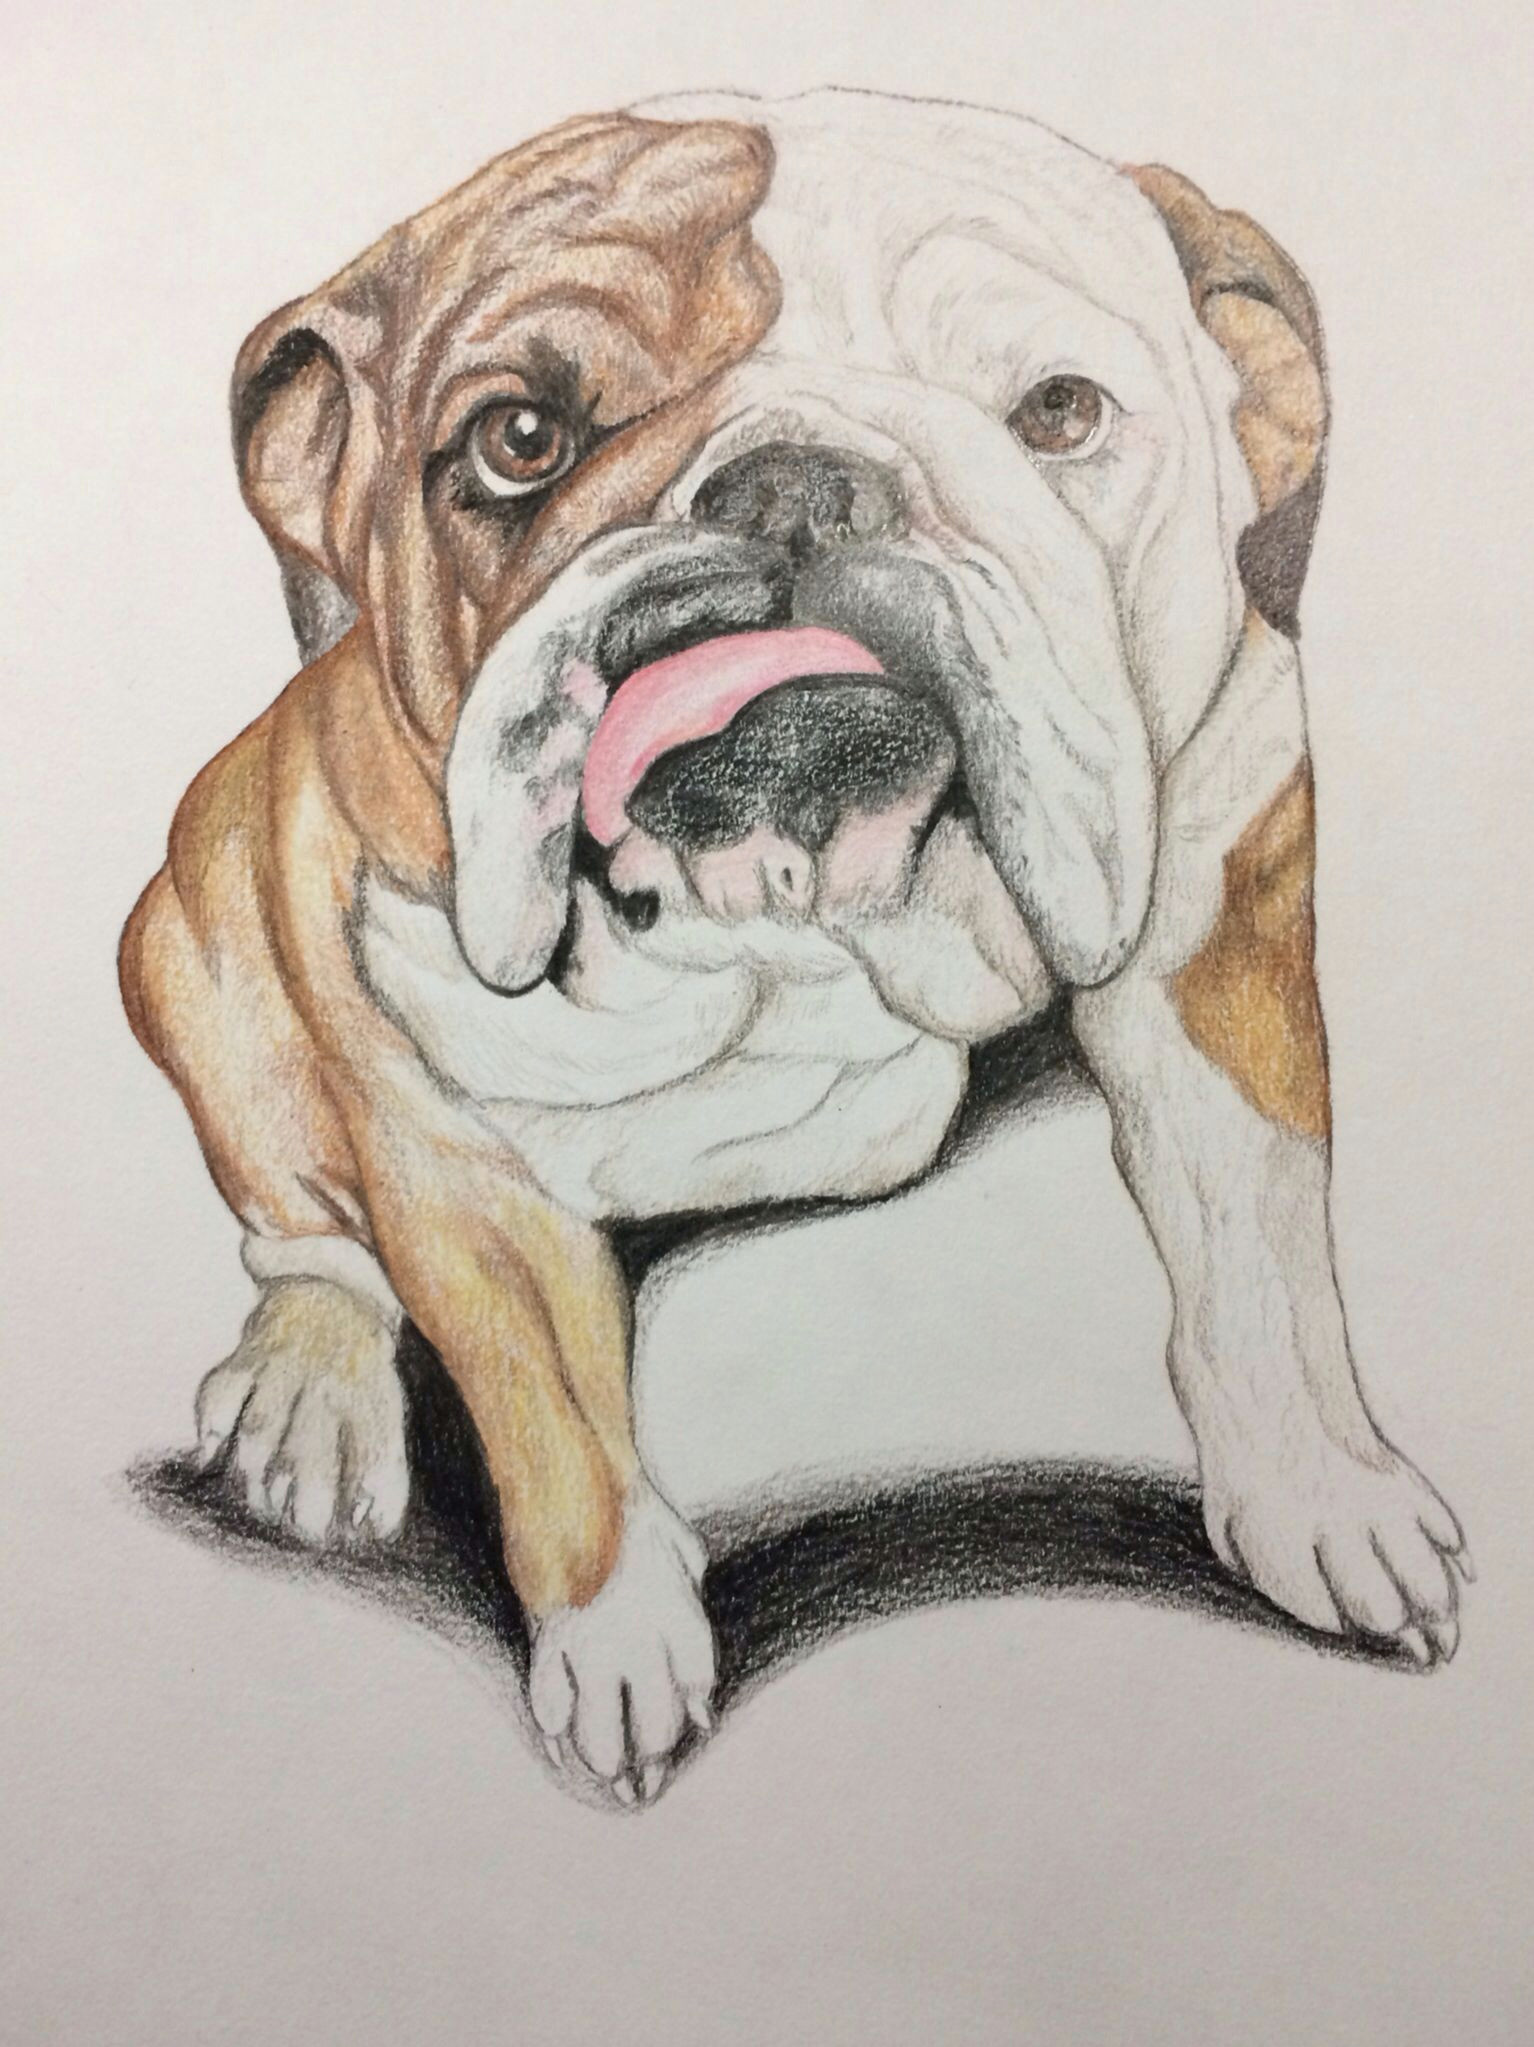 Drawing Dogs In Love This is A Bulldog Portrait I Drew I Love Drawing and Bulldogs are